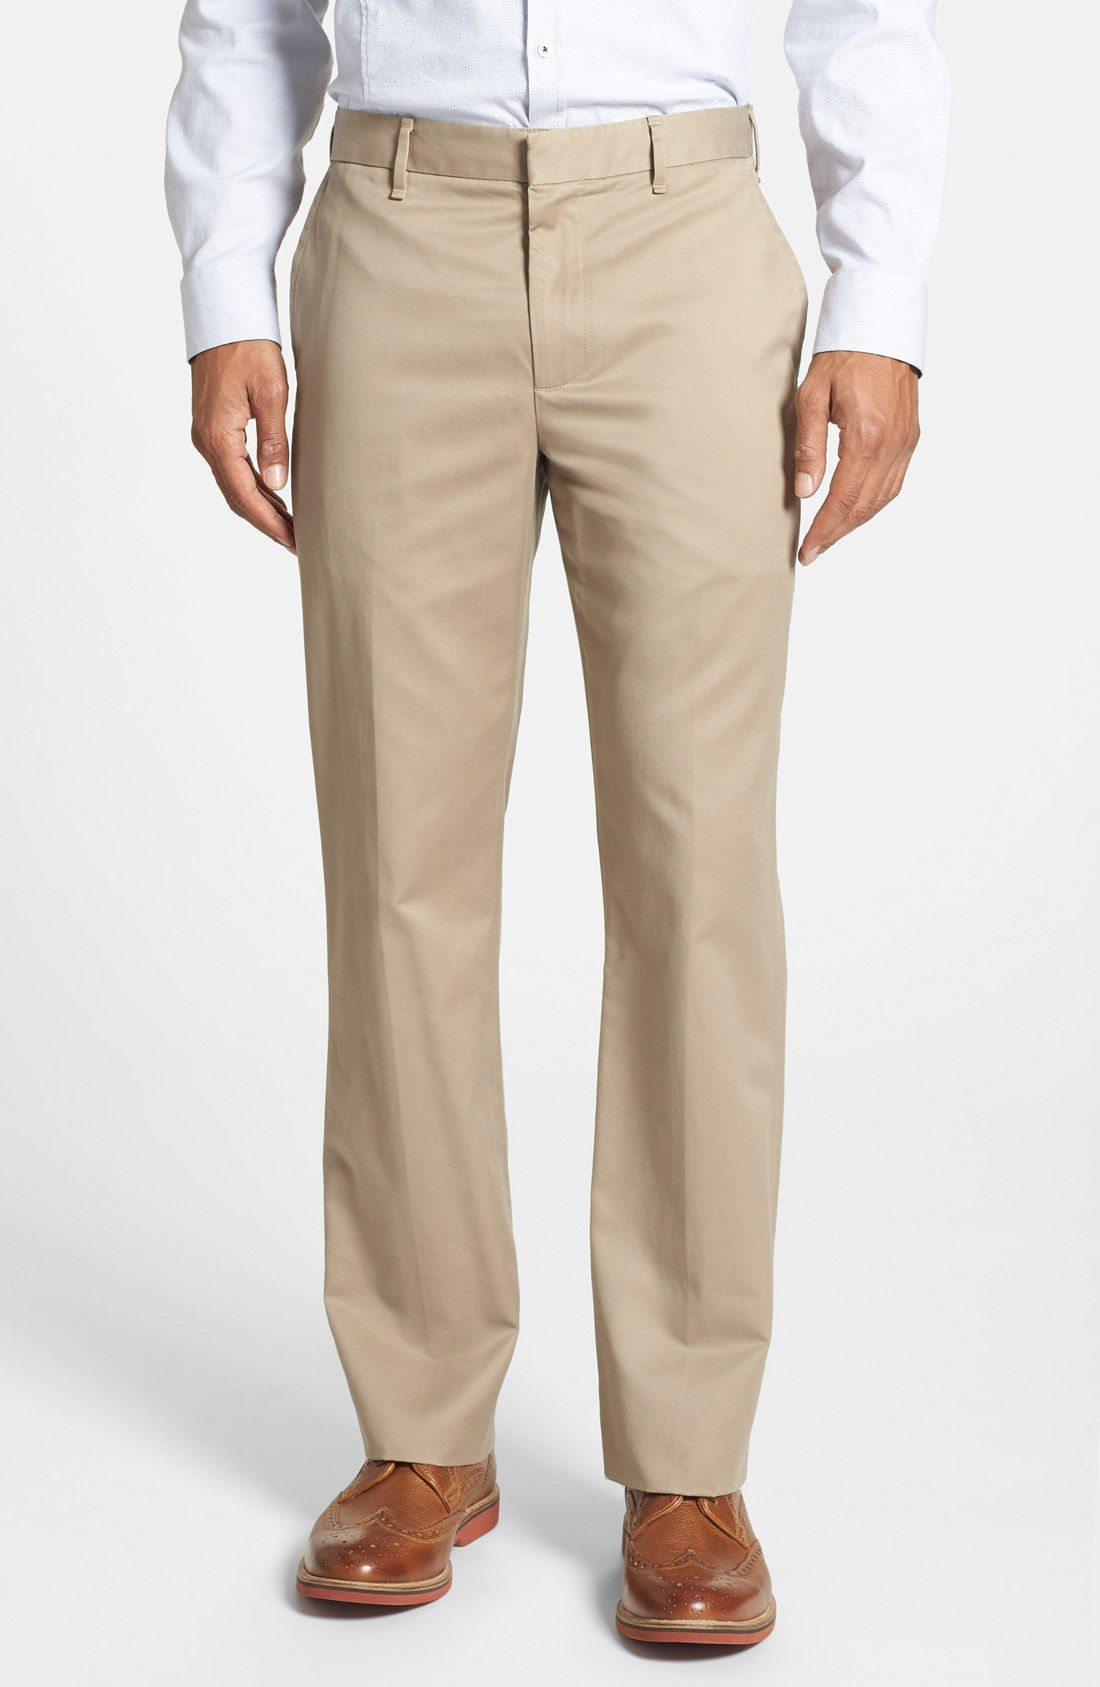 buy online 50fbc a6361 Husband s pants - Bonobos  Weekday Warrior  Non-Iron Straight Leg Cotton  Pants